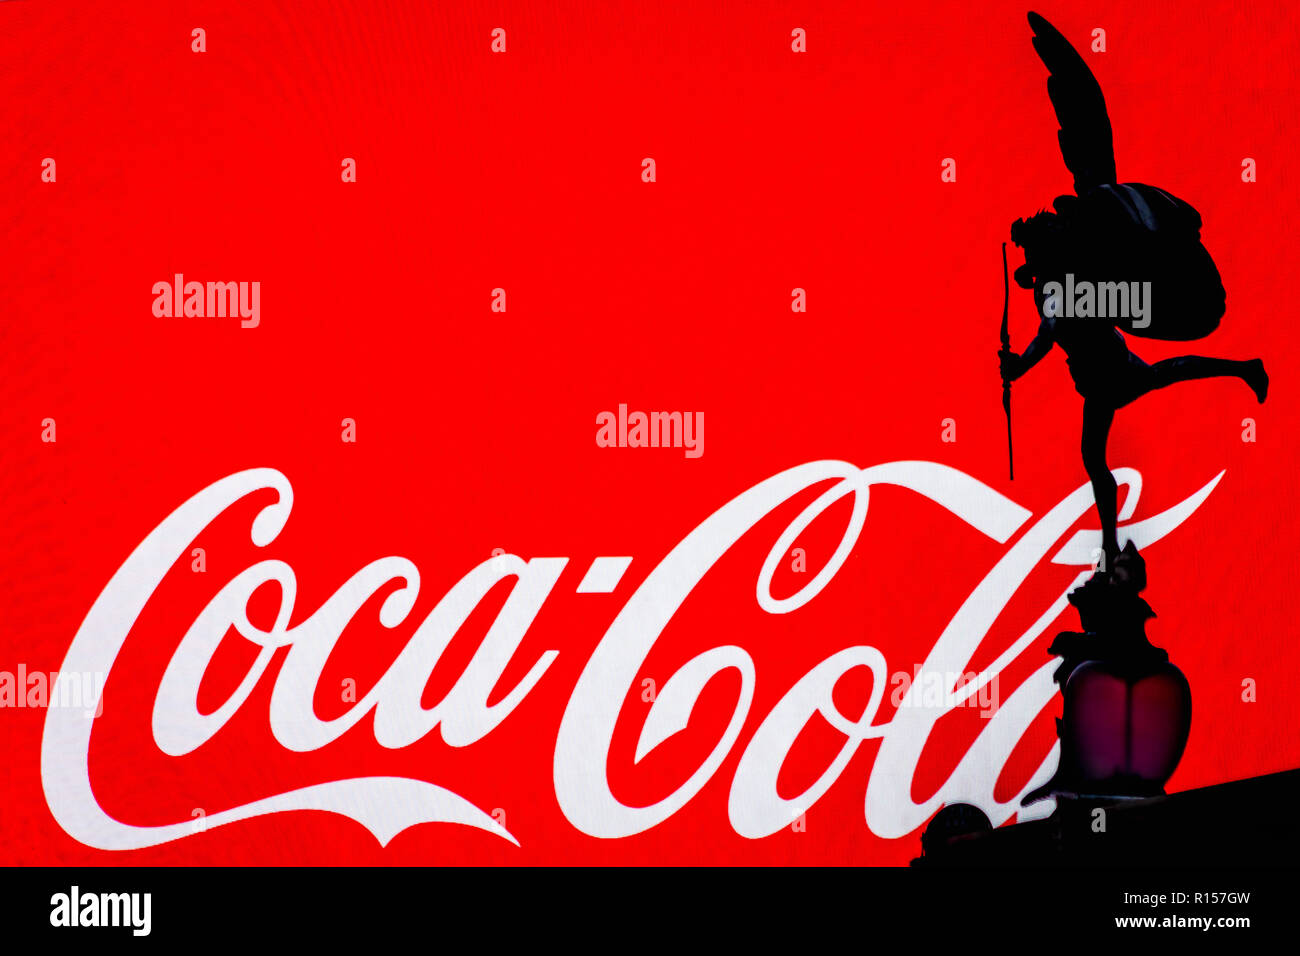 London, UK - August 28, 2018 - silhouette of Cupid statue on Piccadilly Circus square, logo Coca-Cola on the advertisement in the background - Stock Image